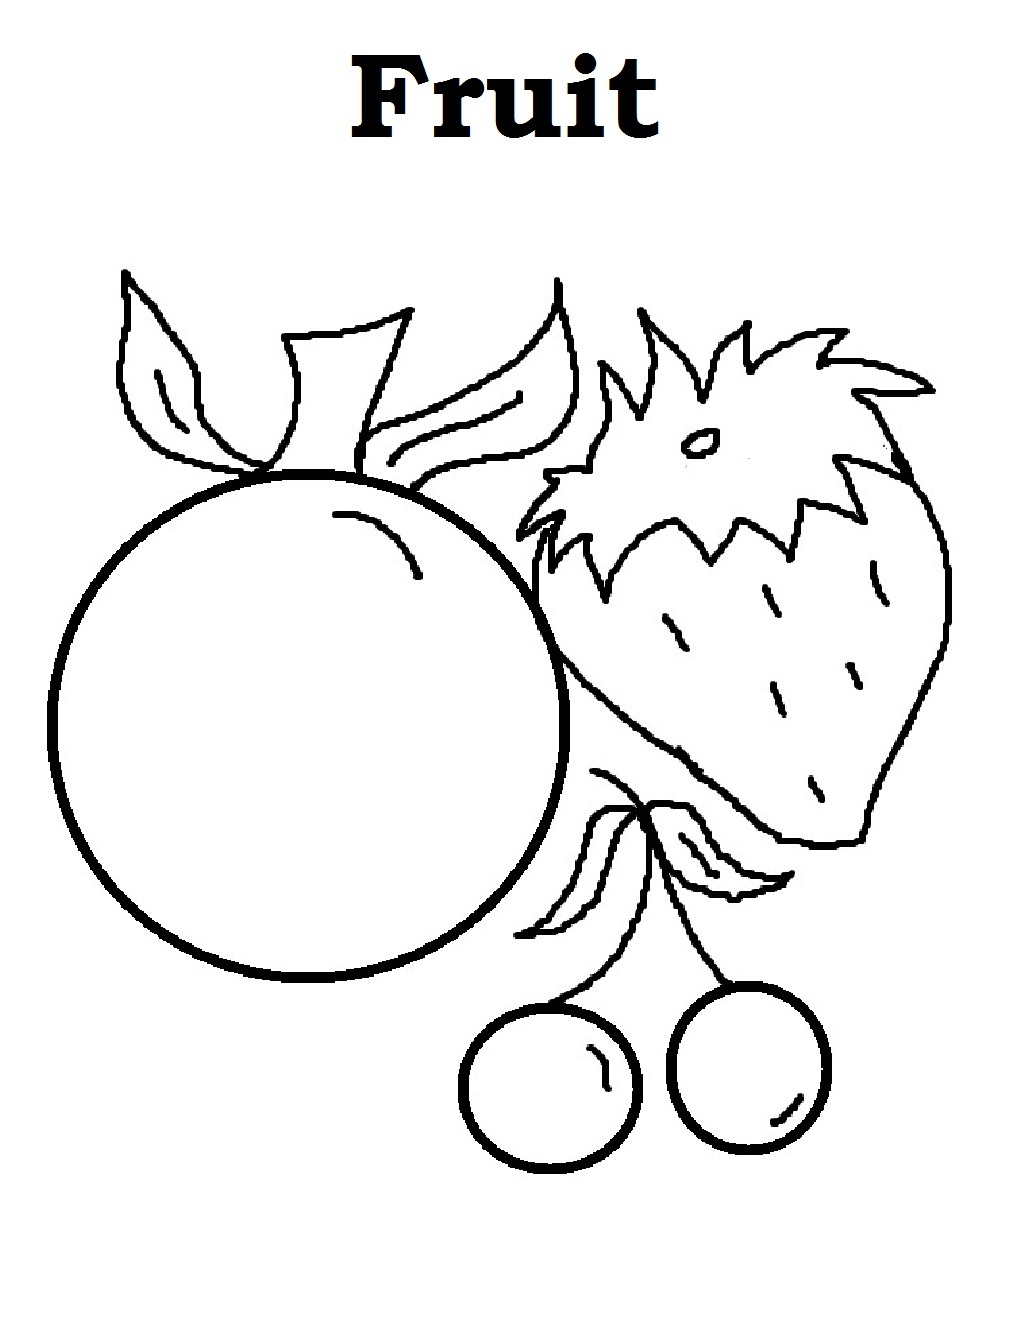 Free Printable Fruit Coloring Pages For Kids Fruits Coloring Pages